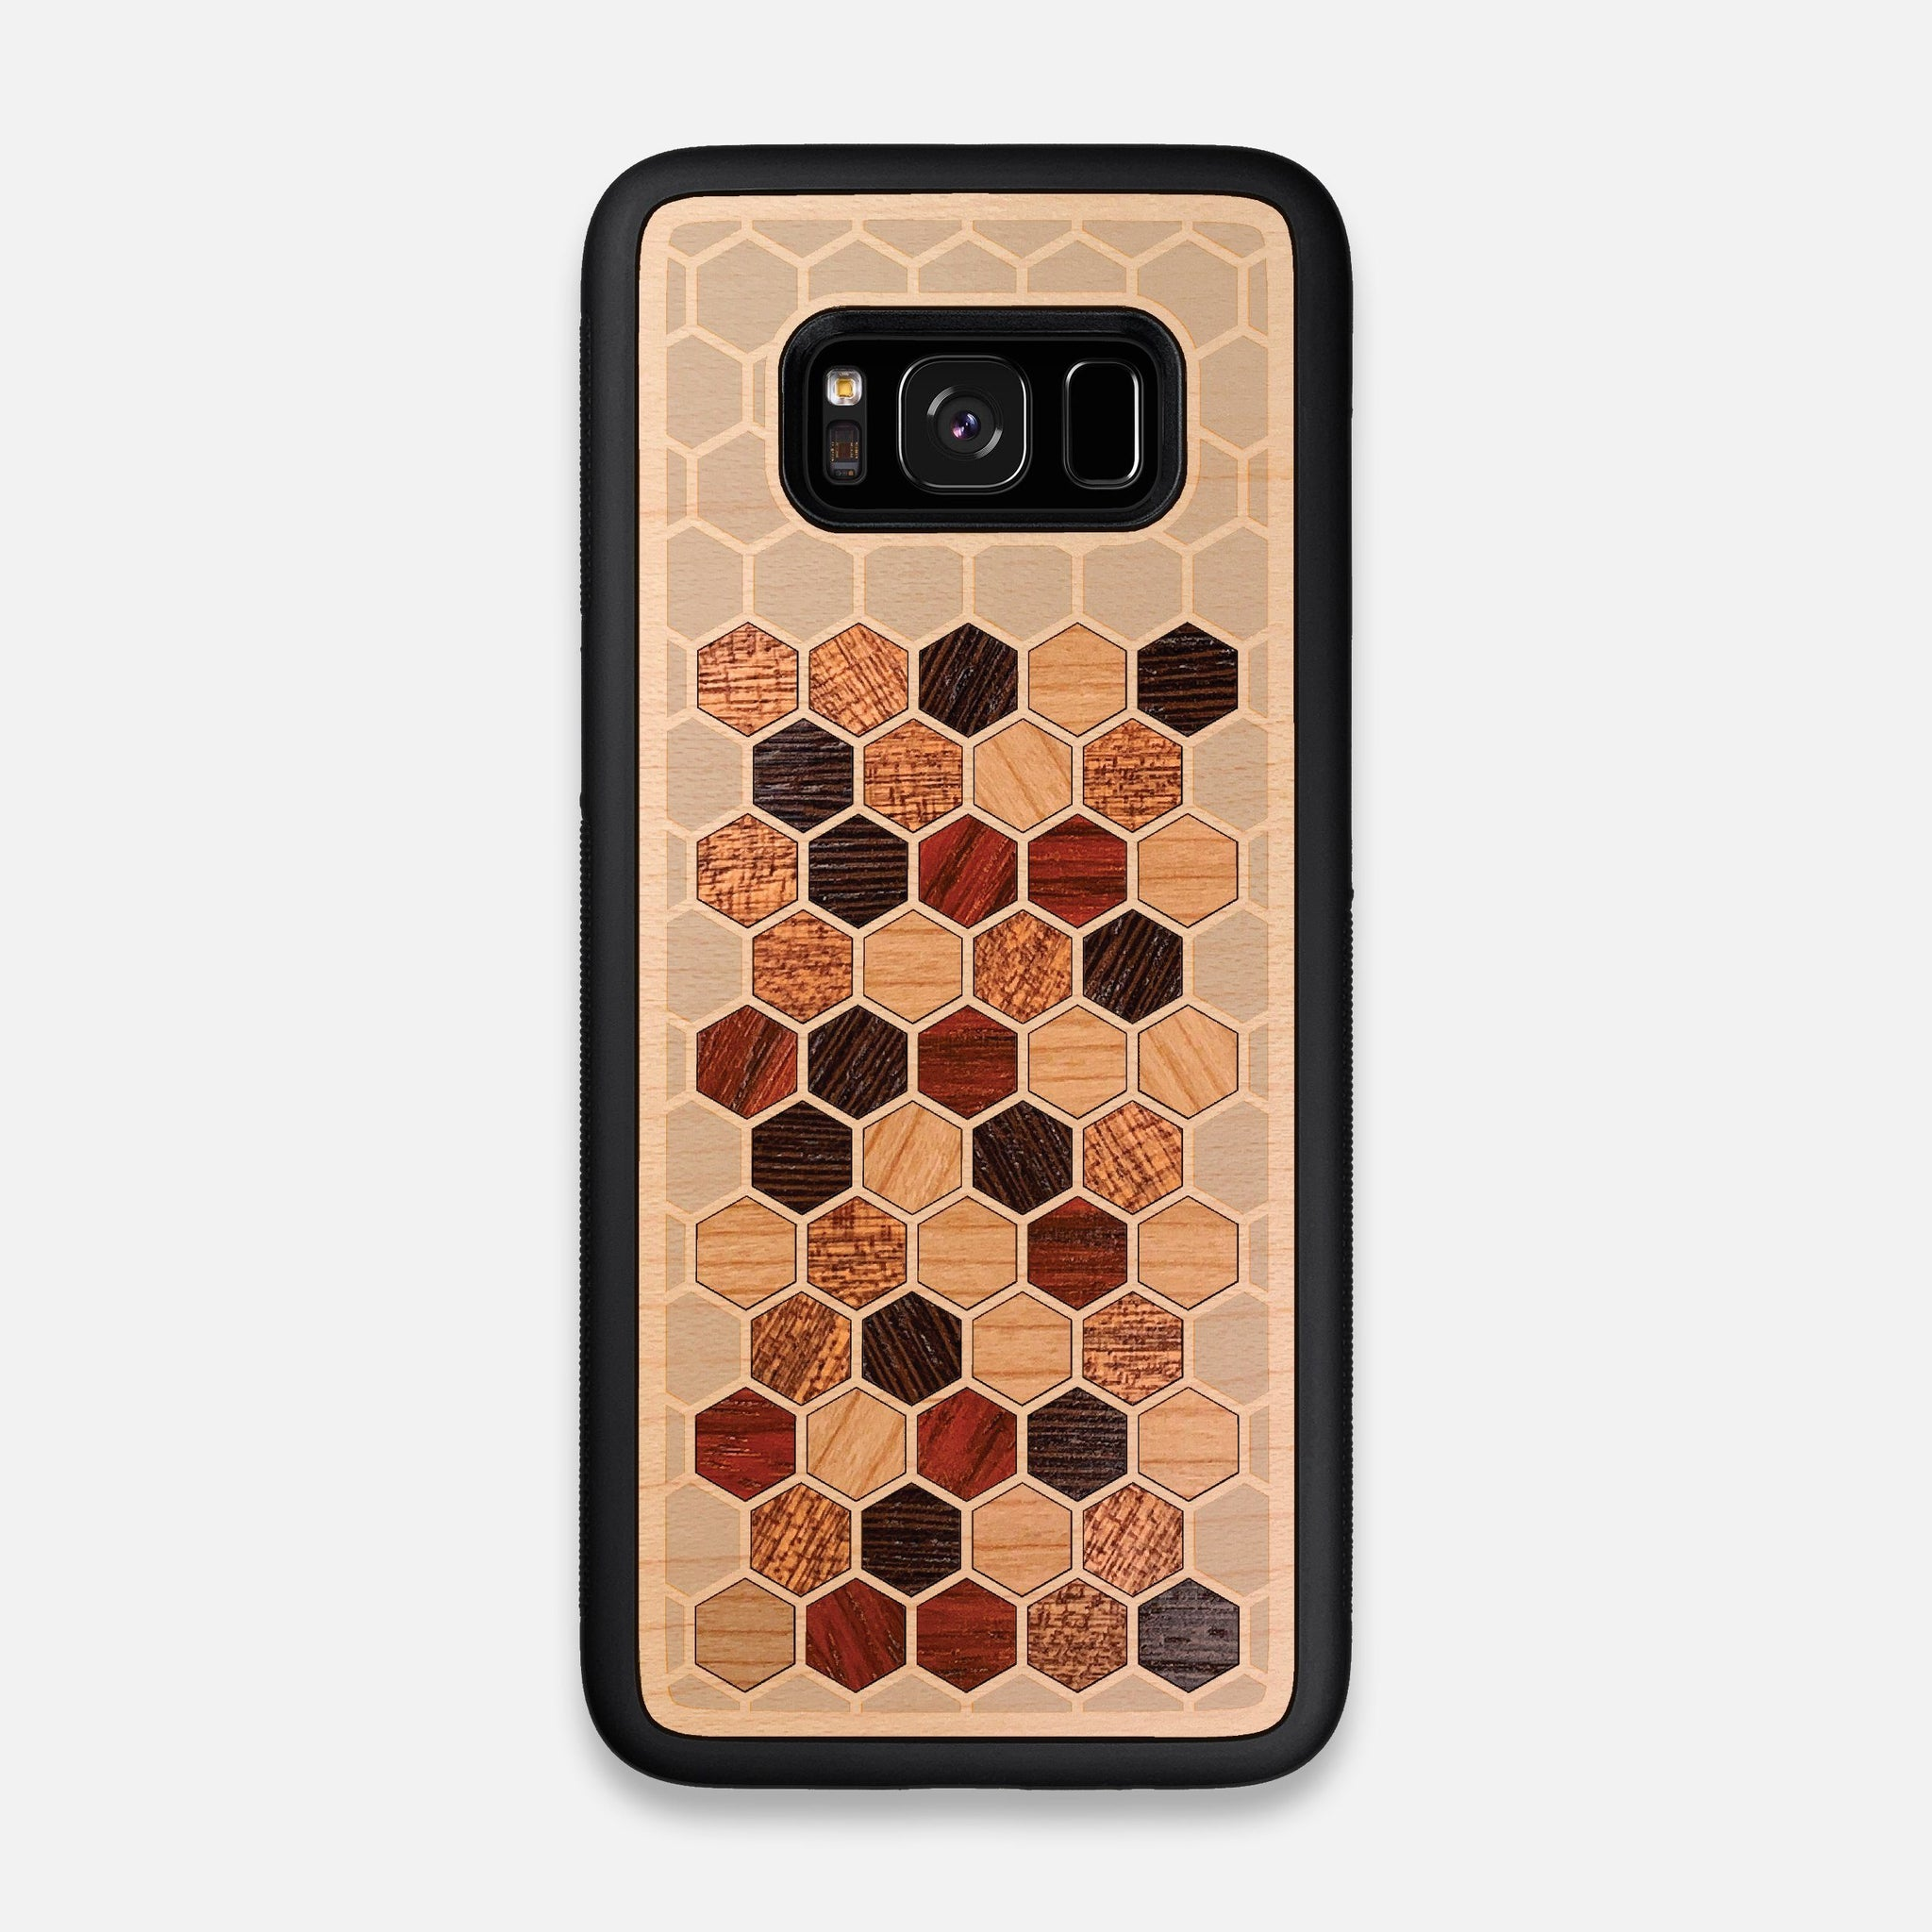 Front view of the Cellular Maple Wood Galaxy S8 Case by Keyway Designs